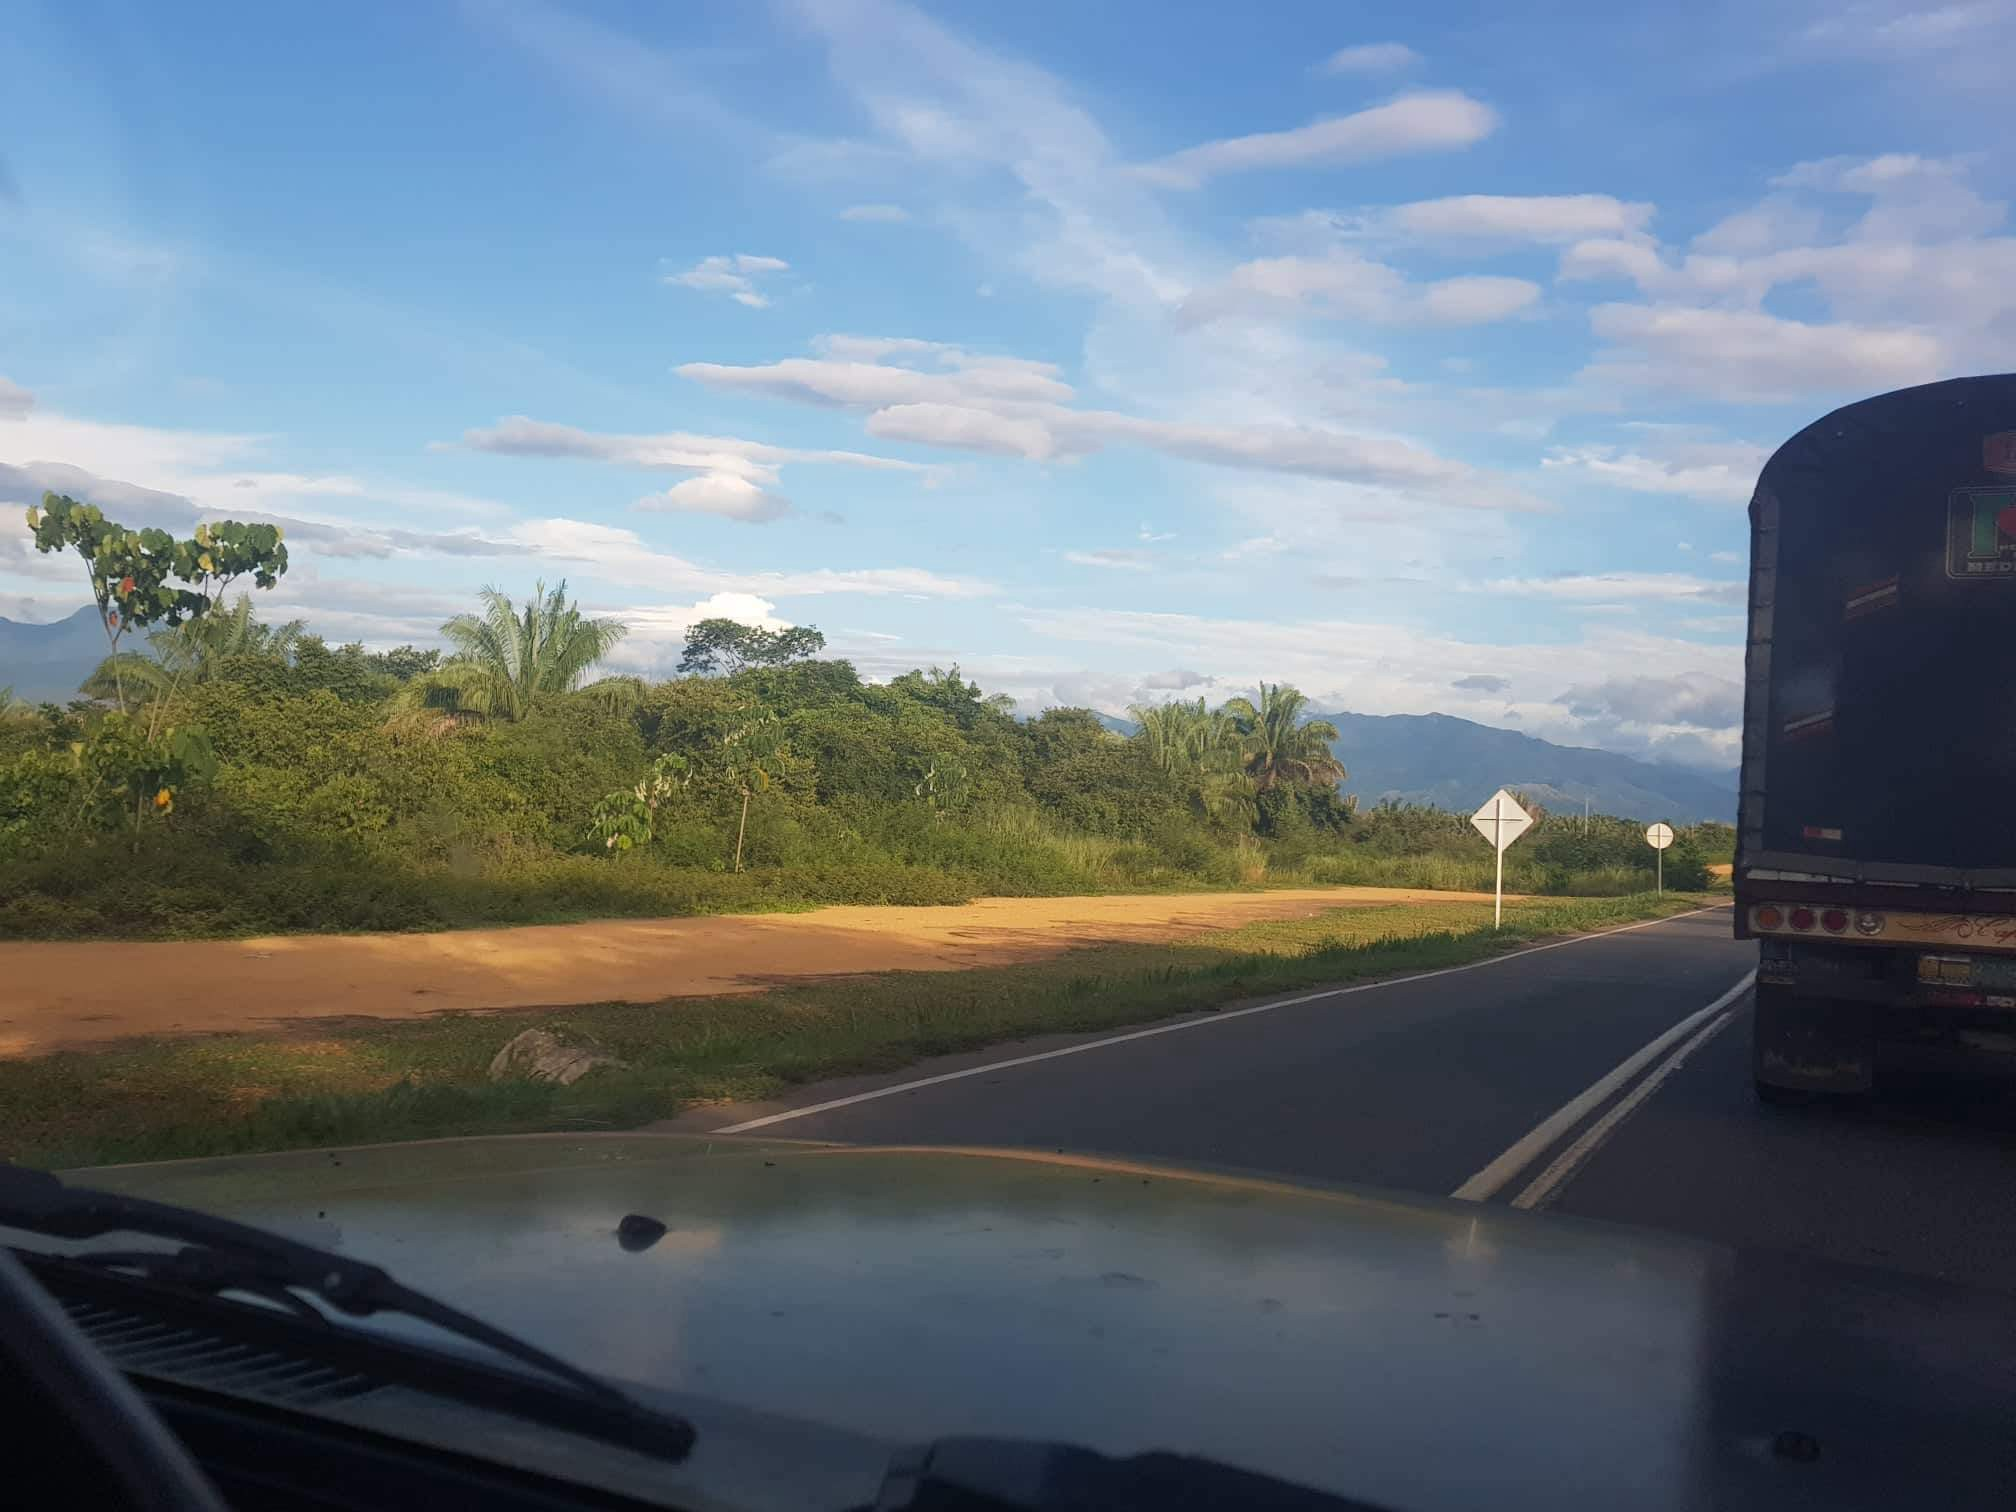 Stuck behind another truck, lucky I have a great view of The Andes